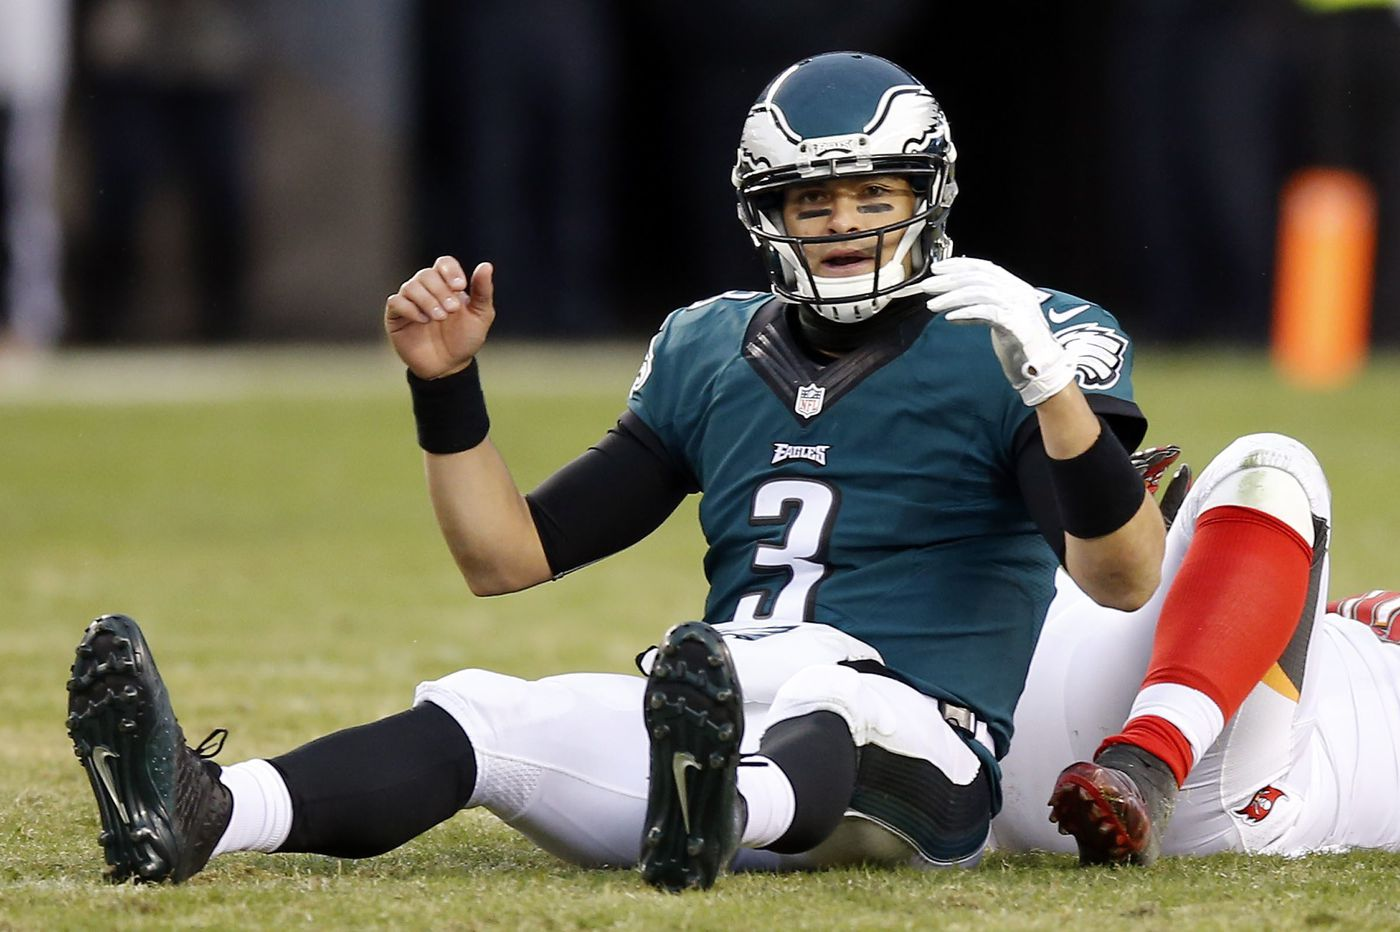 Ex-Eagles quarterback Mark Sanchez signs with Redskins